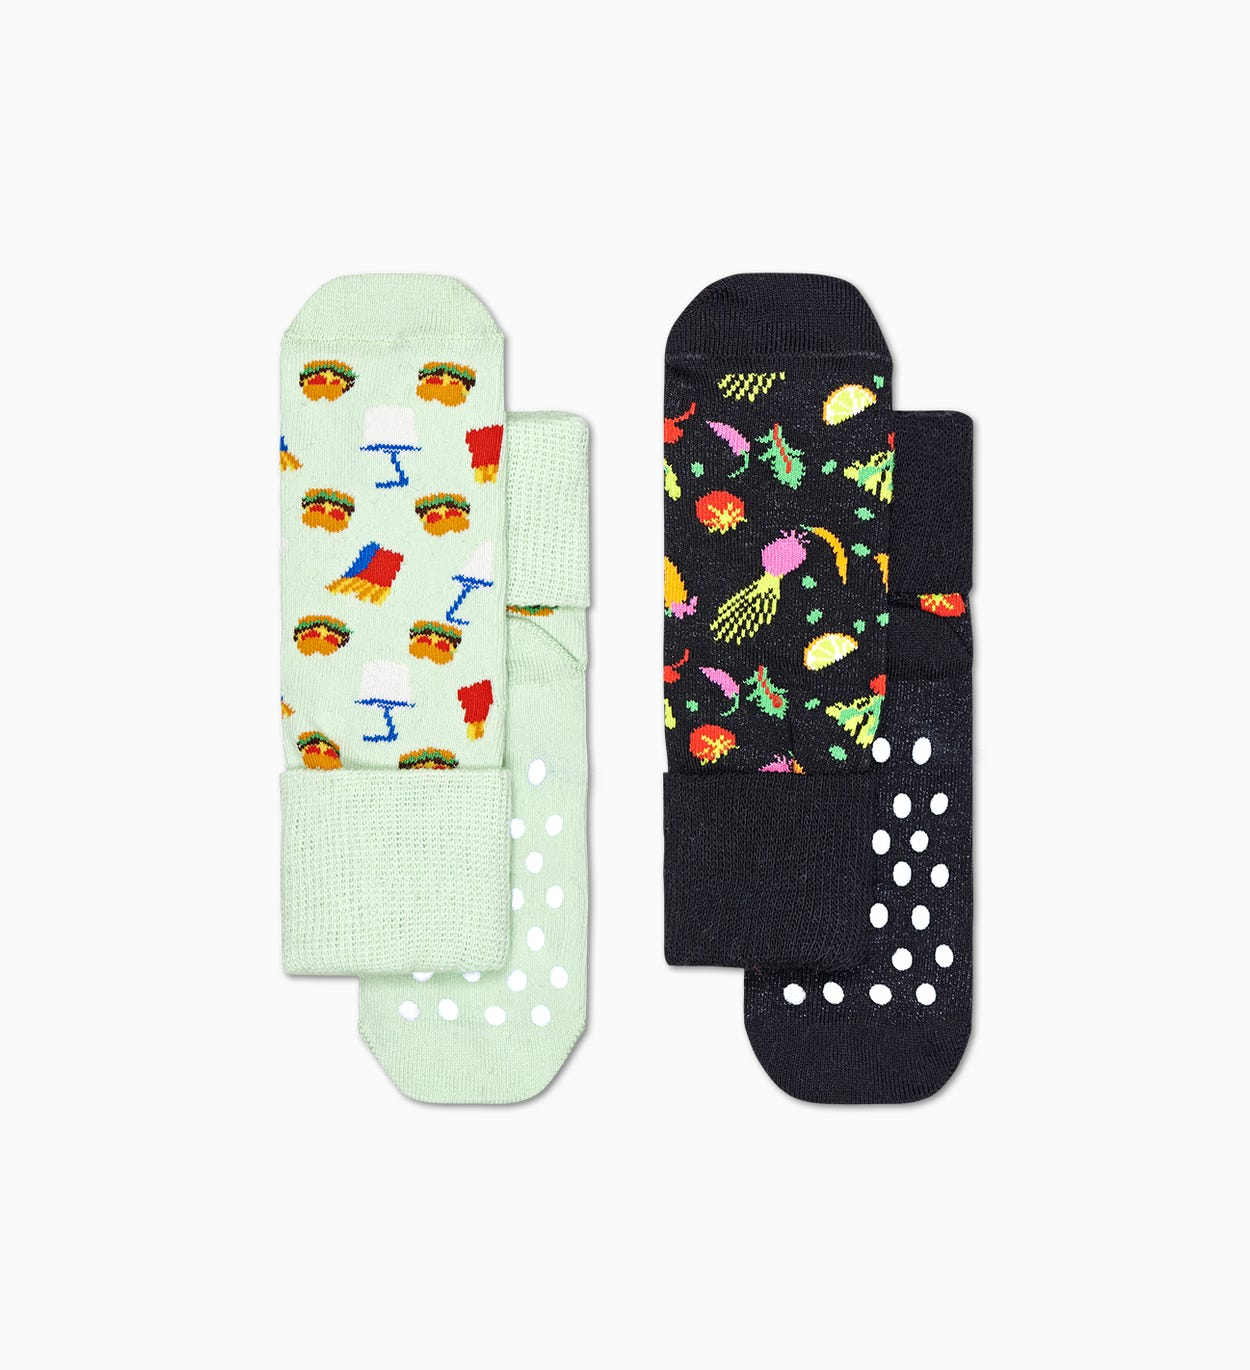 2-Pack Kids Food Anti-Slip Socks